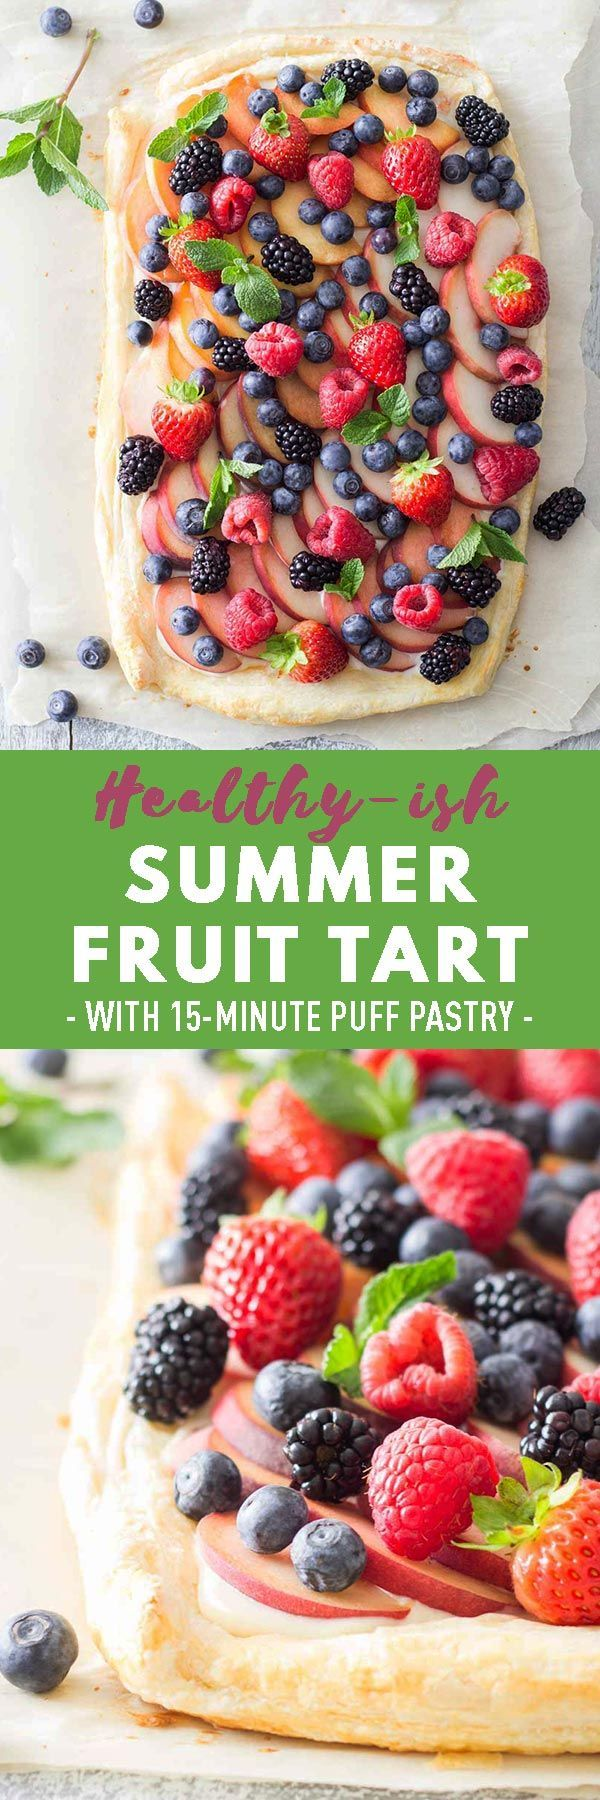 To-die-for Summer Fruit Tart made with 15-Minute Puff Pastry, a layer of lime fl…